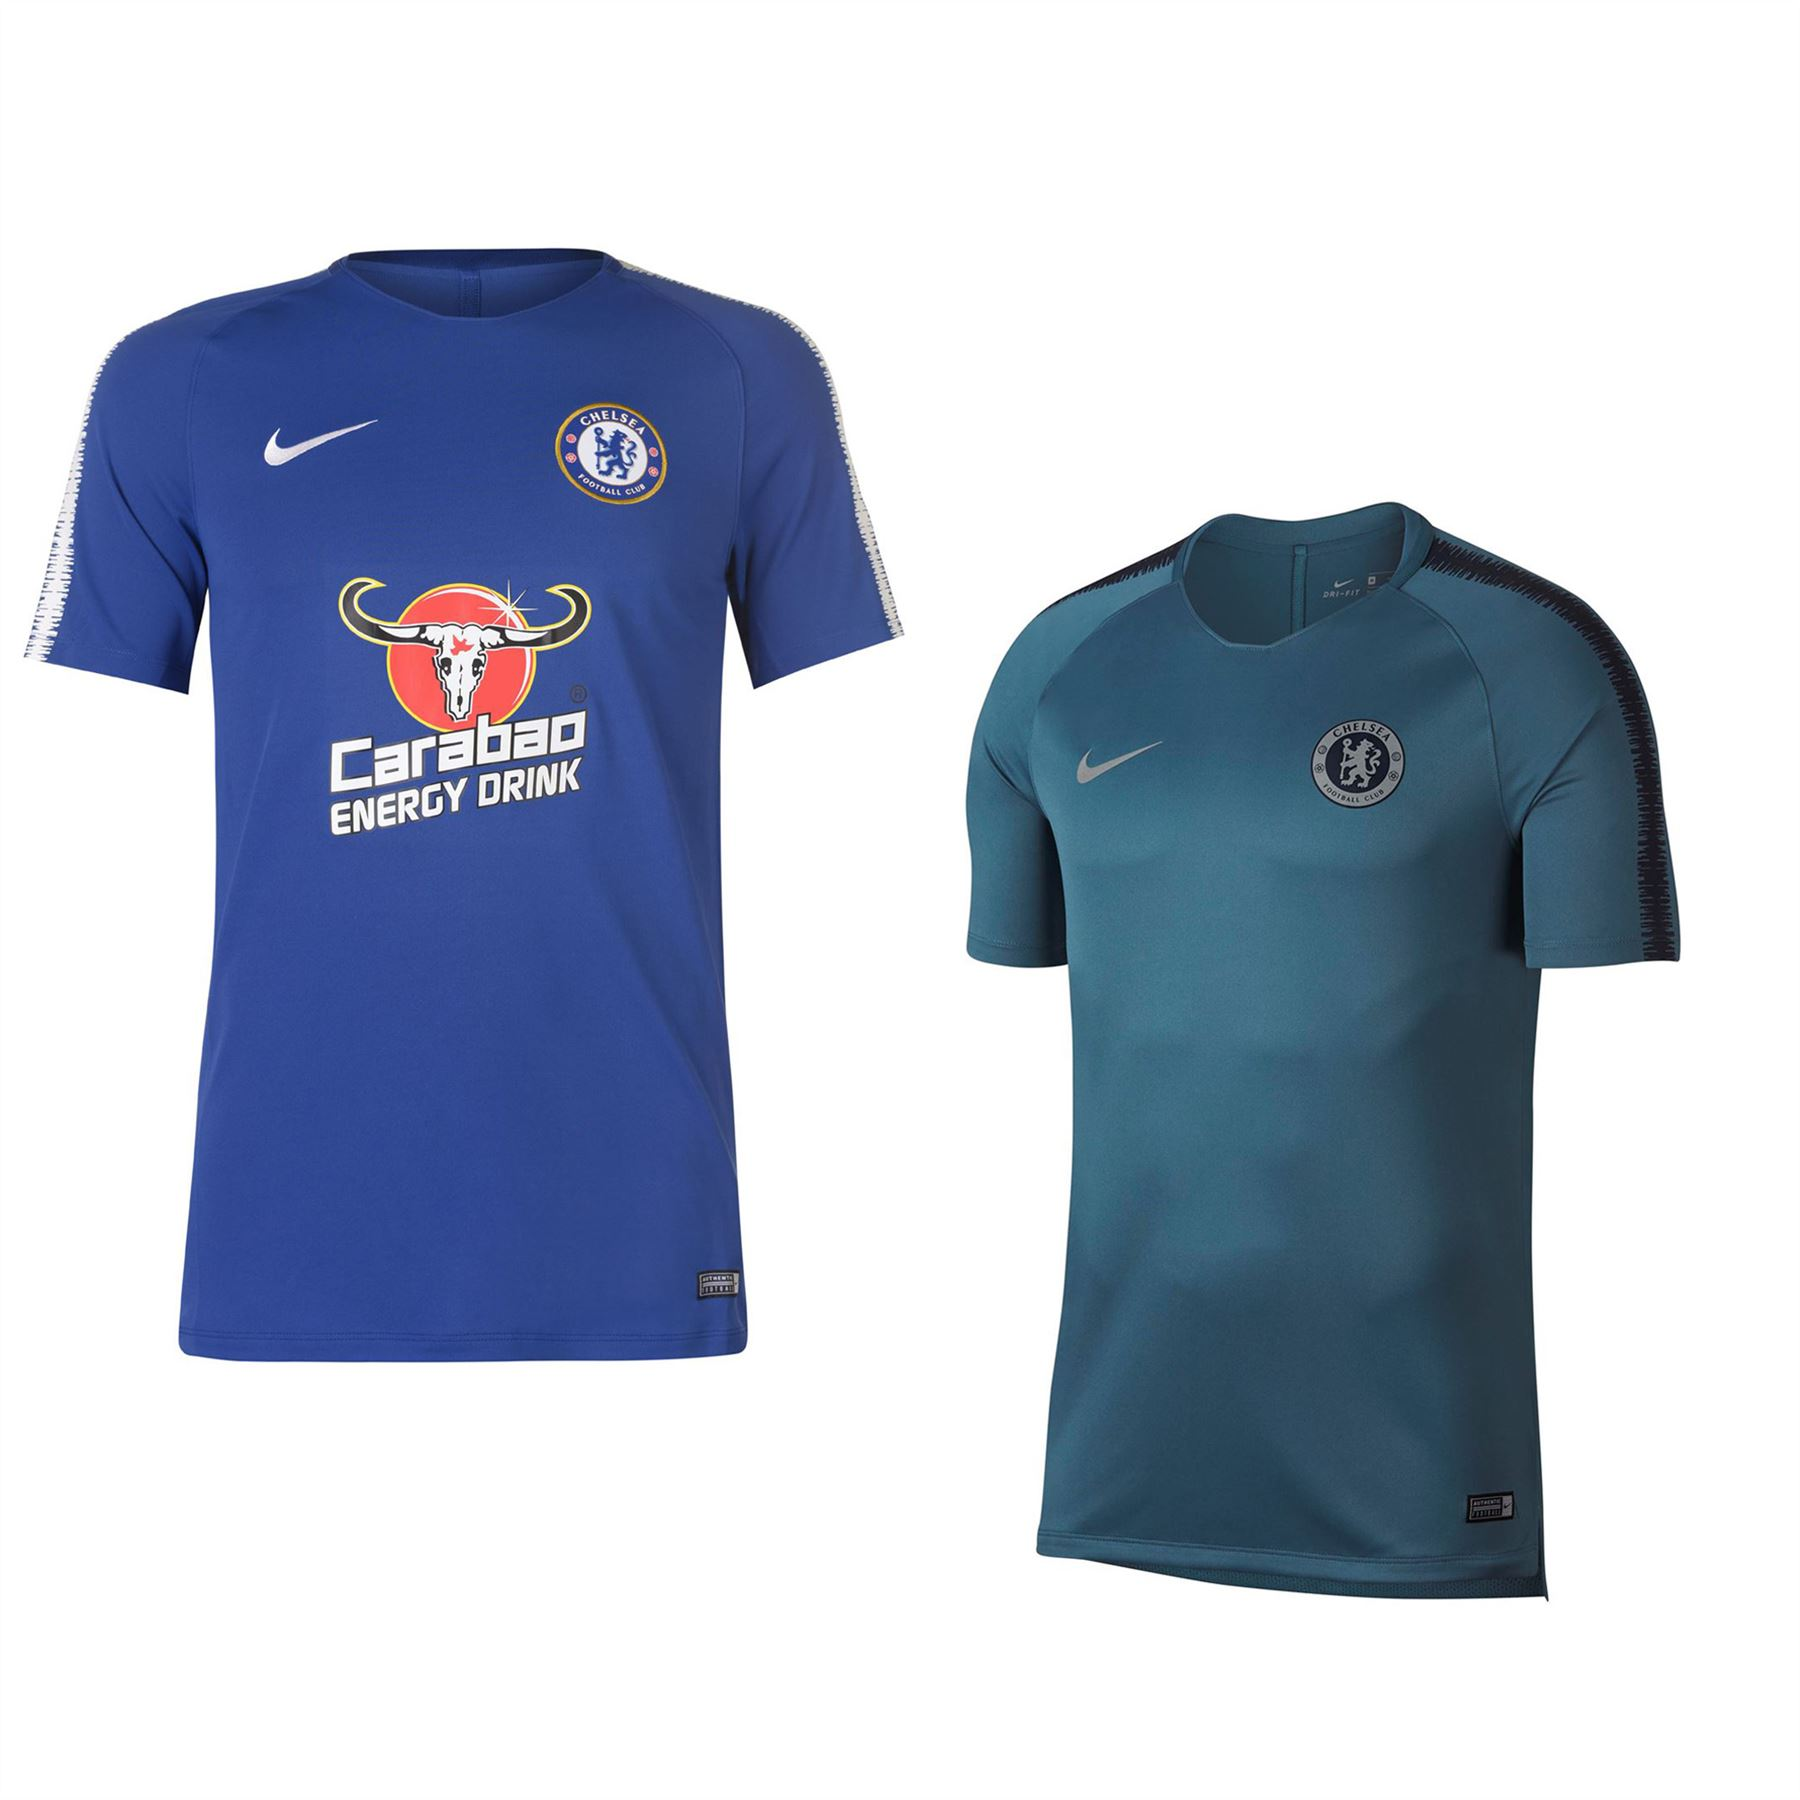 low priced 32551 f9c74 Details about Nike Chelsea Squad T-Shirt 2018 2019 Mens Football Soccer Fan  Top Tee Shirt